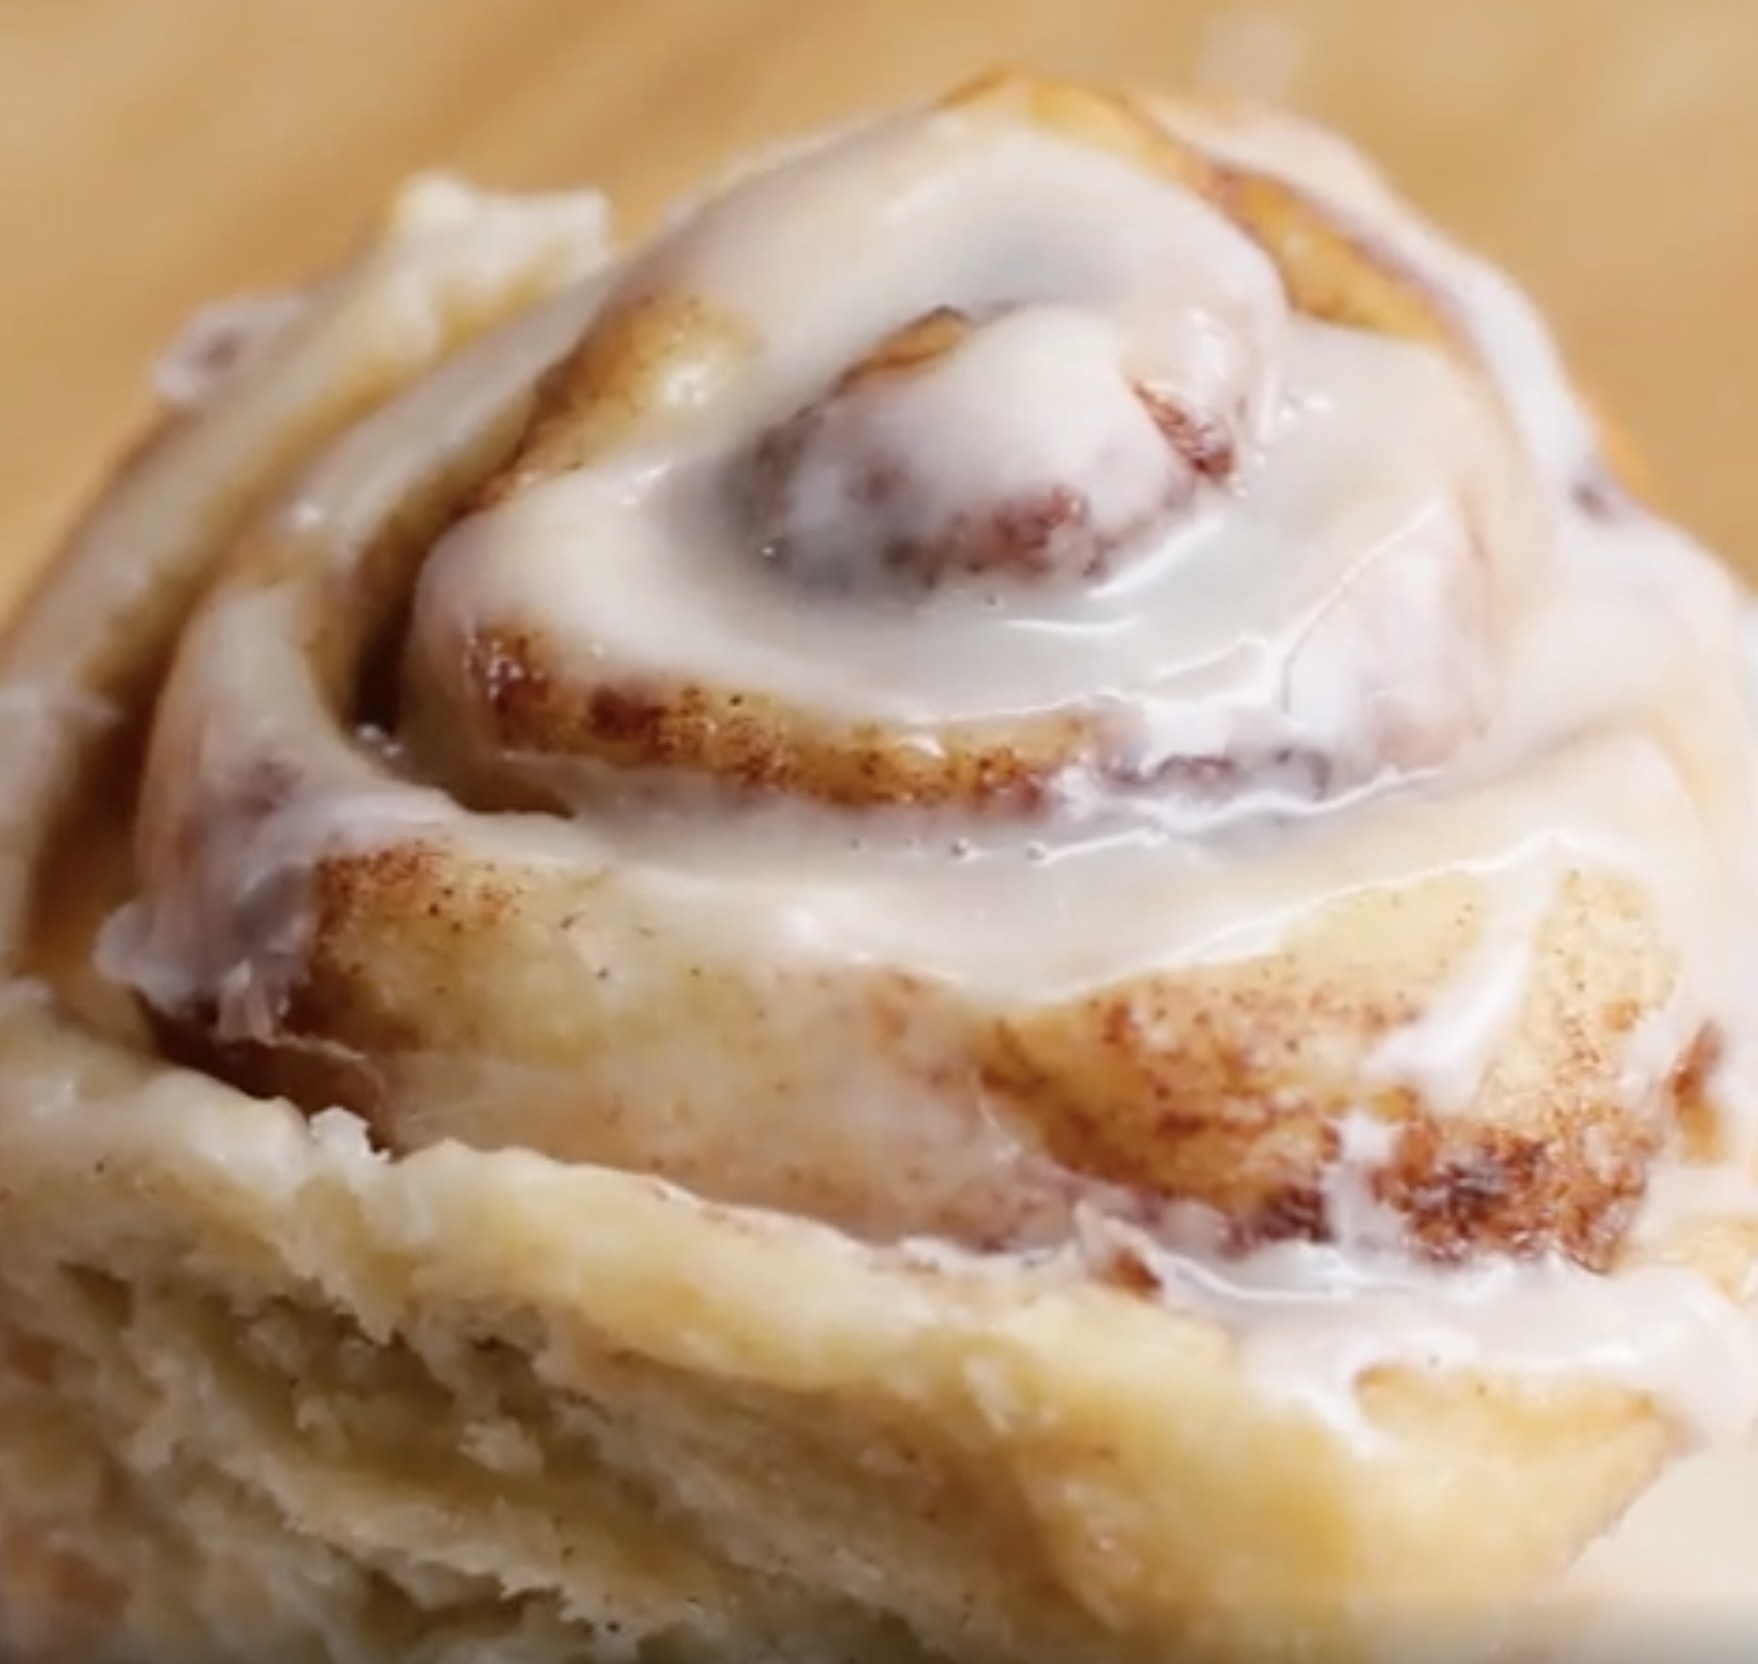 A cinnamon roll with icing